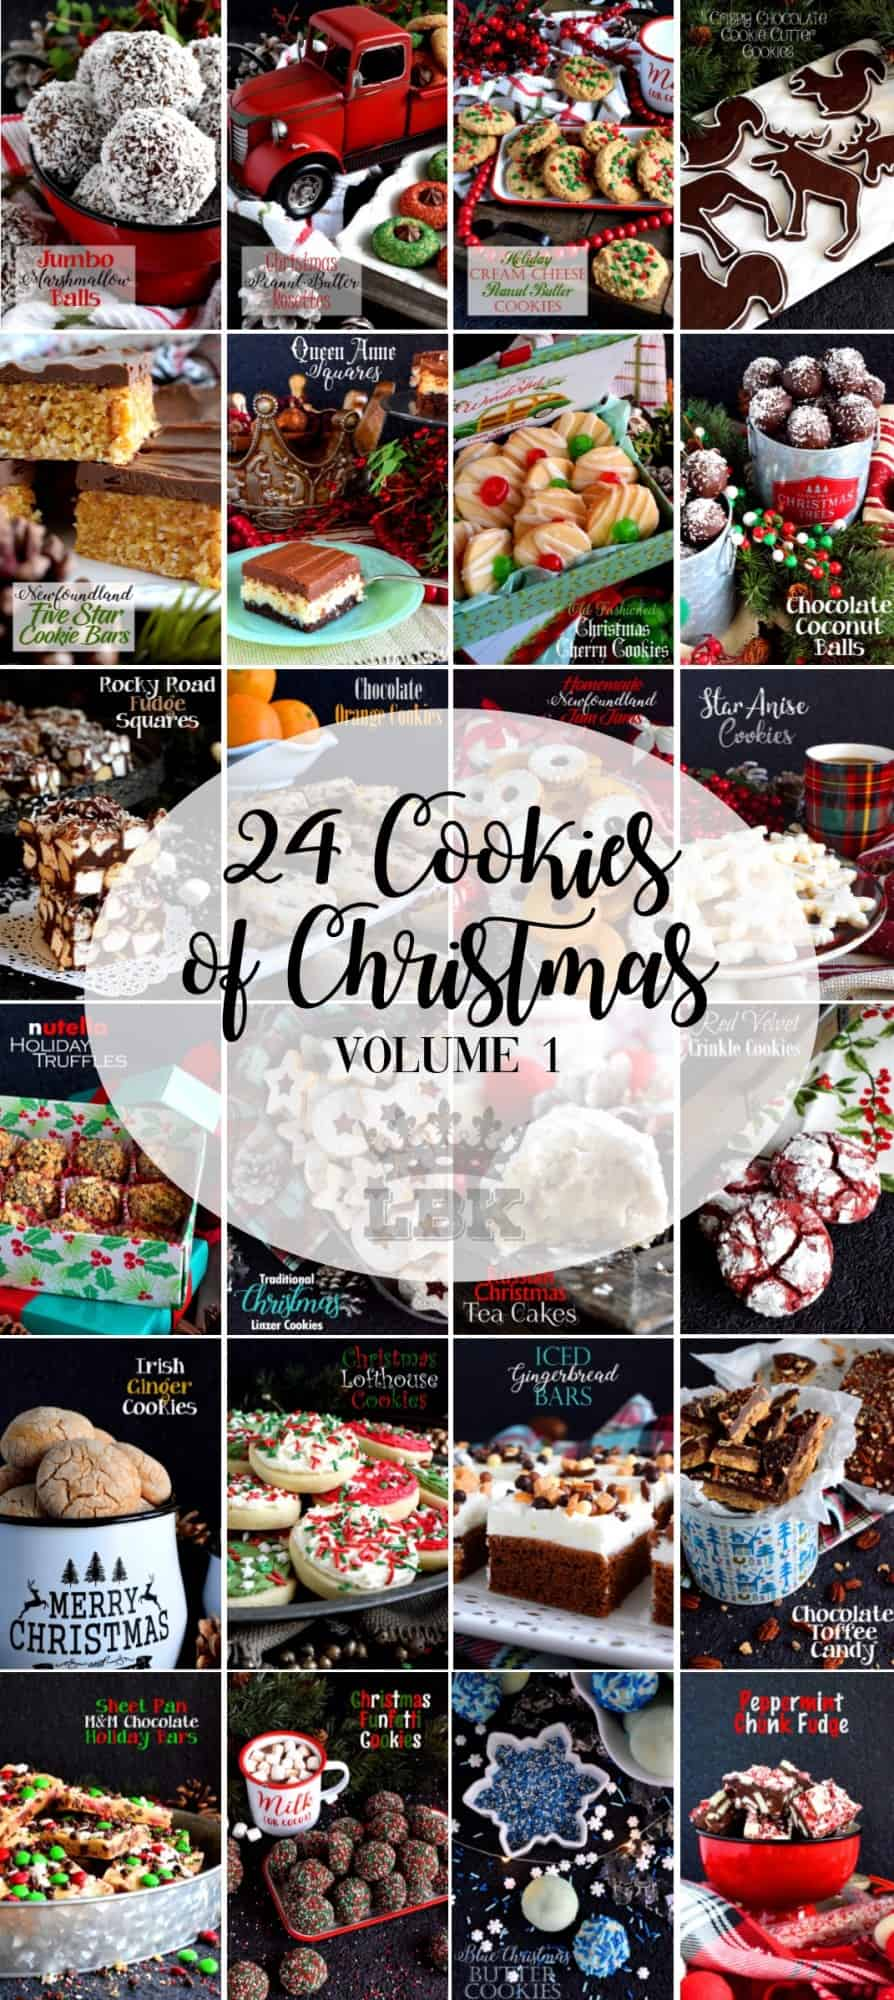 24 Cookies of Christmas - Volume 1